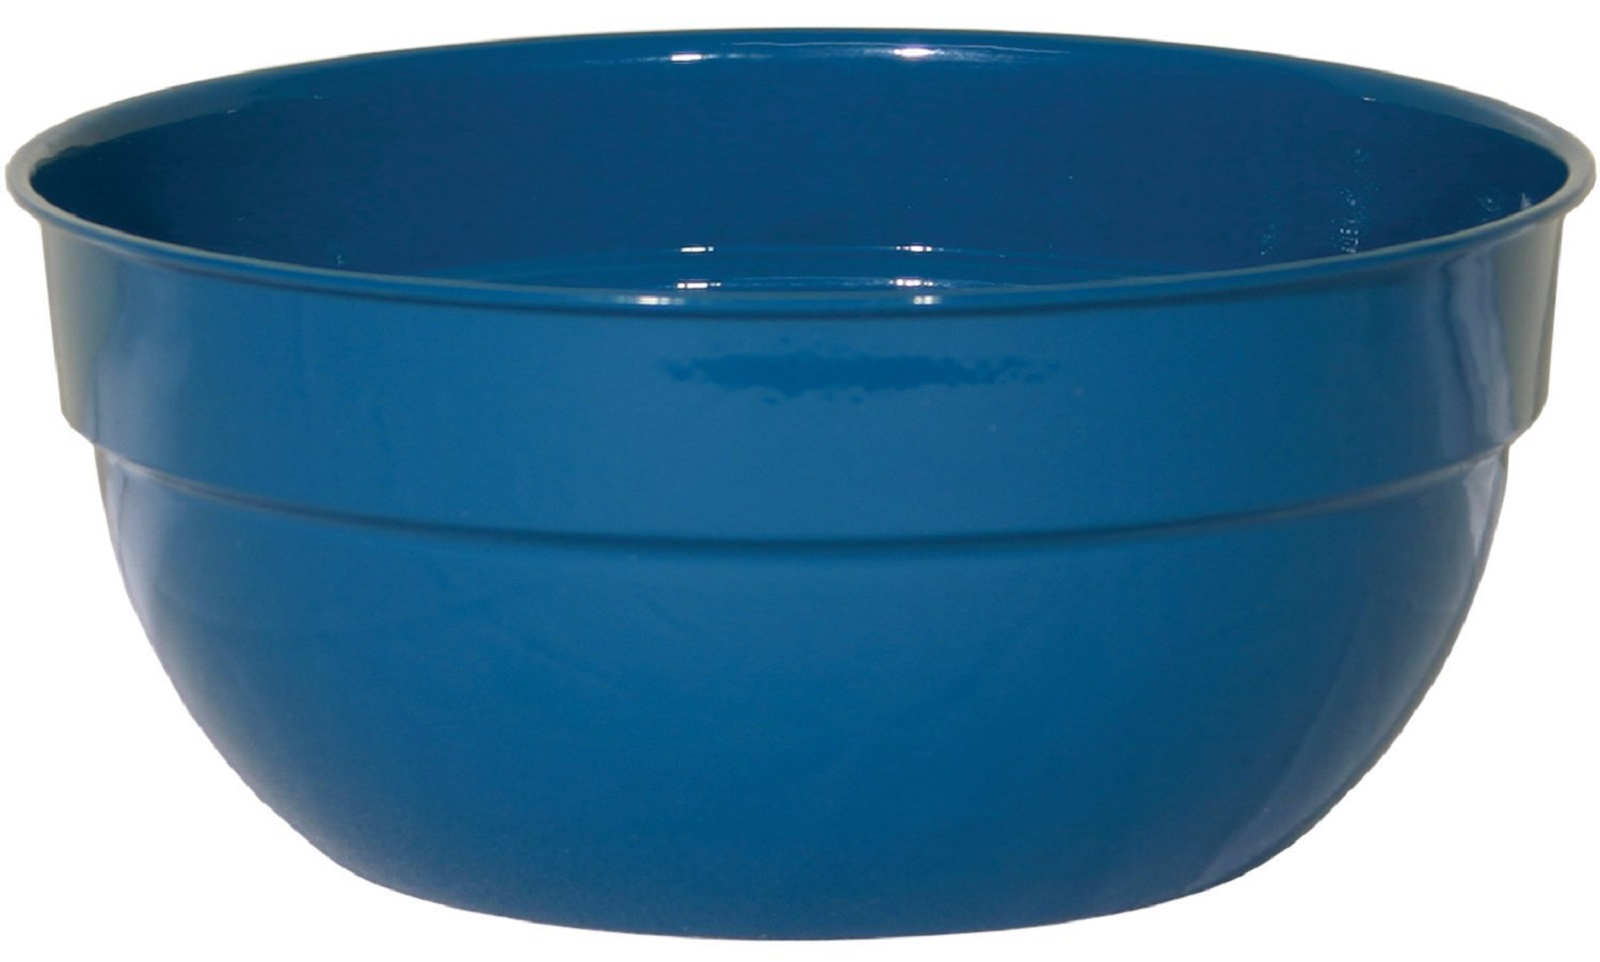 "Robert Allen Home & Garden Mini Bella Classic Bowl Planter 8"""" Bluemoon"